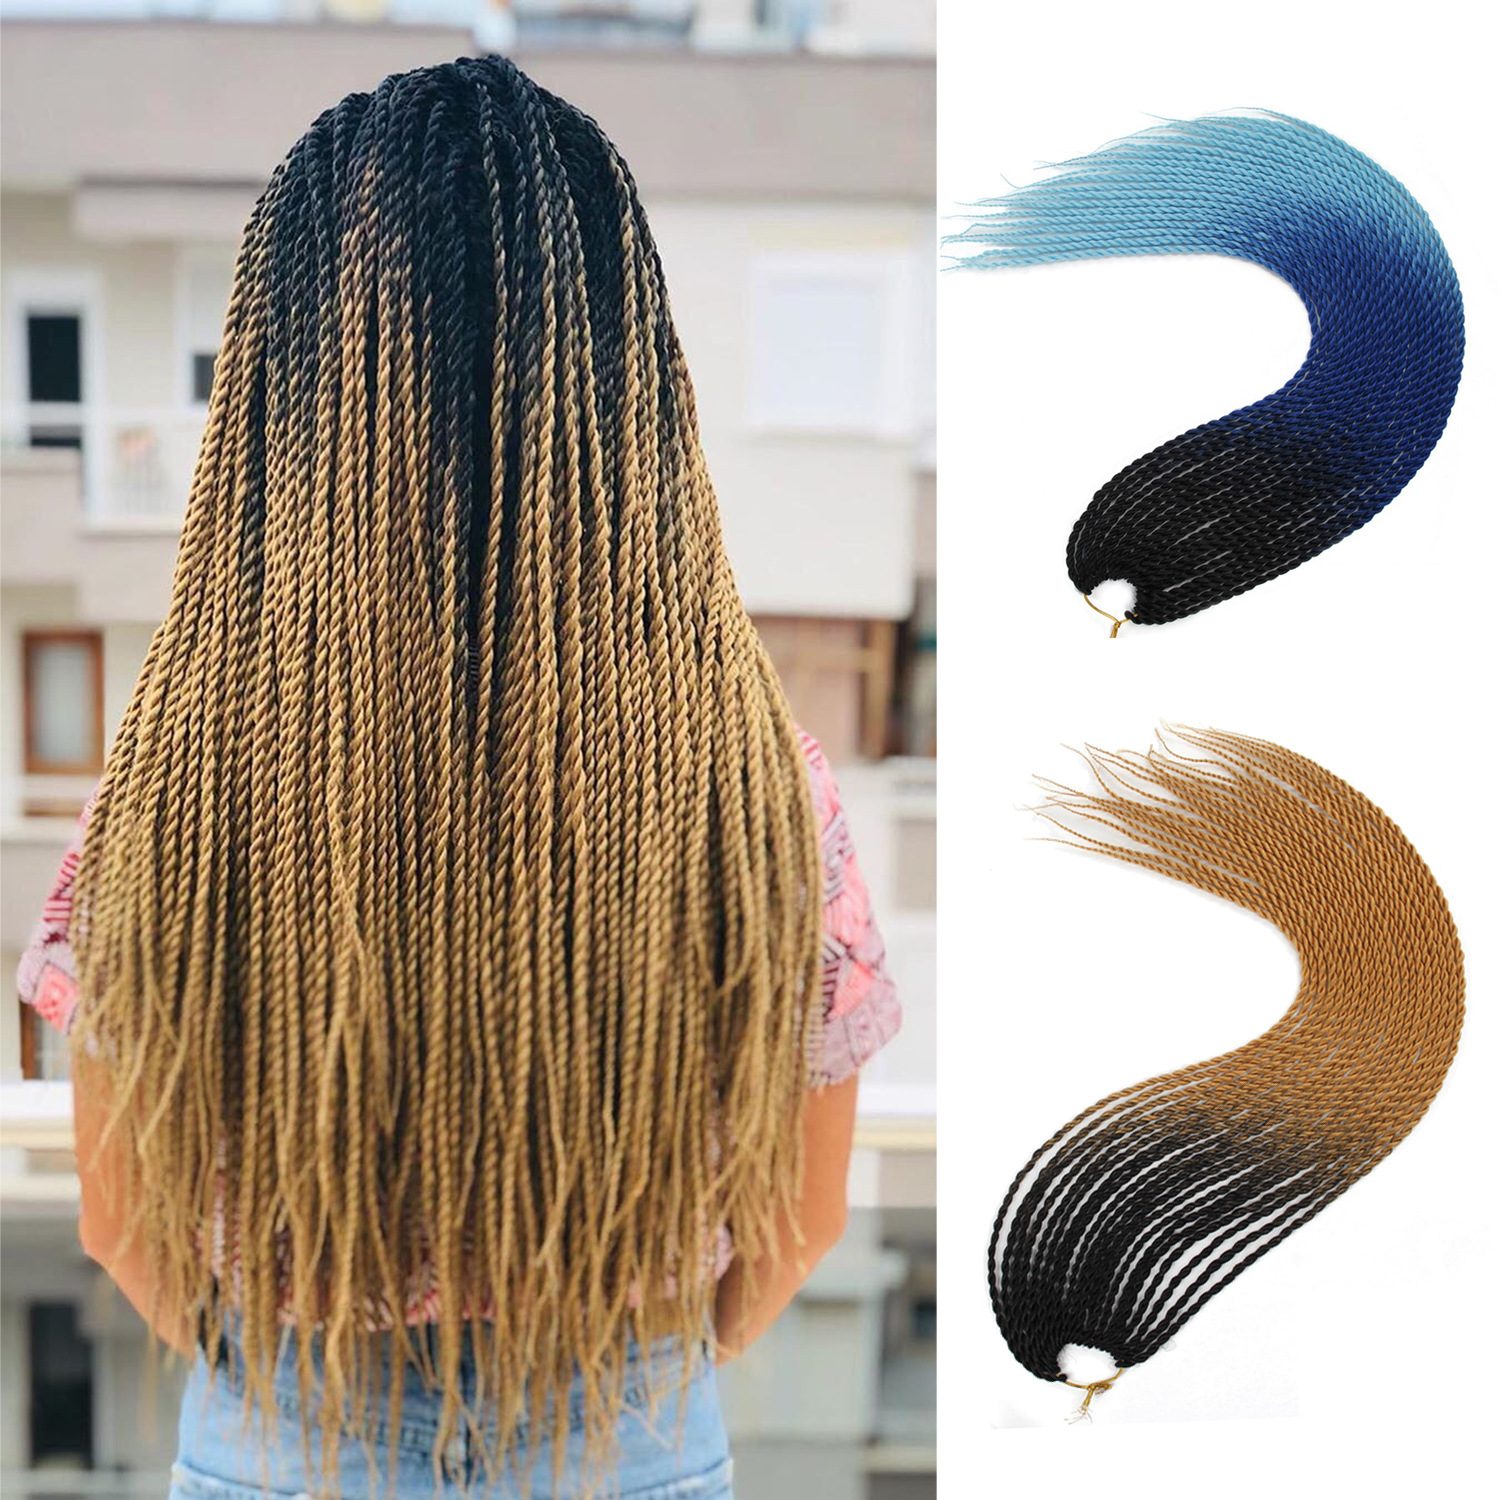 Ombre Braiding Hair Senegalese Twist Hair Extensions Synthetic Grey Blonde Colors Crochet Braids